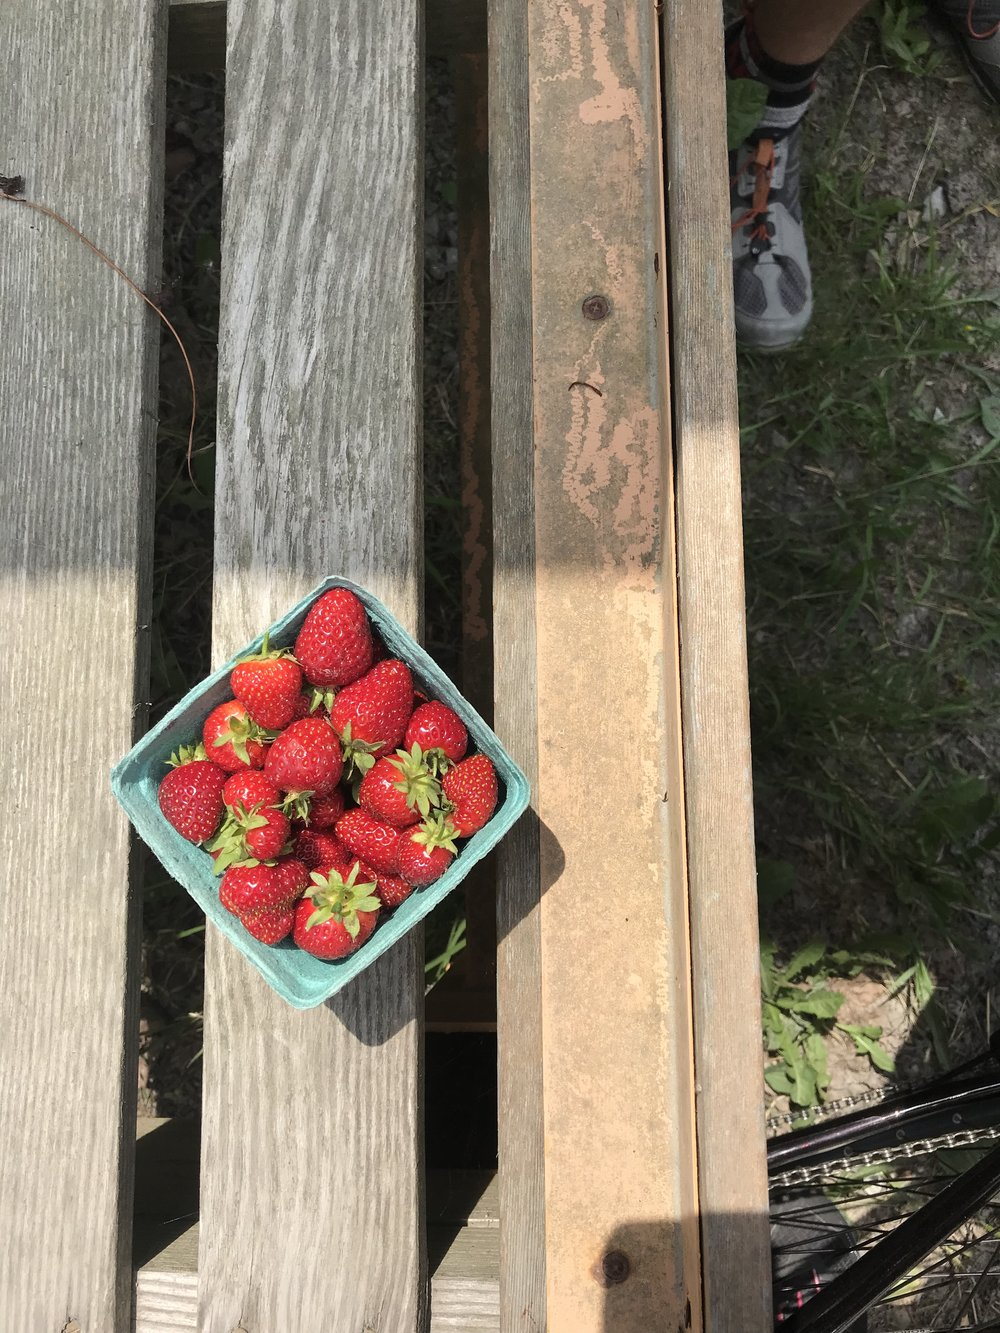 ...and ate these strawberries.